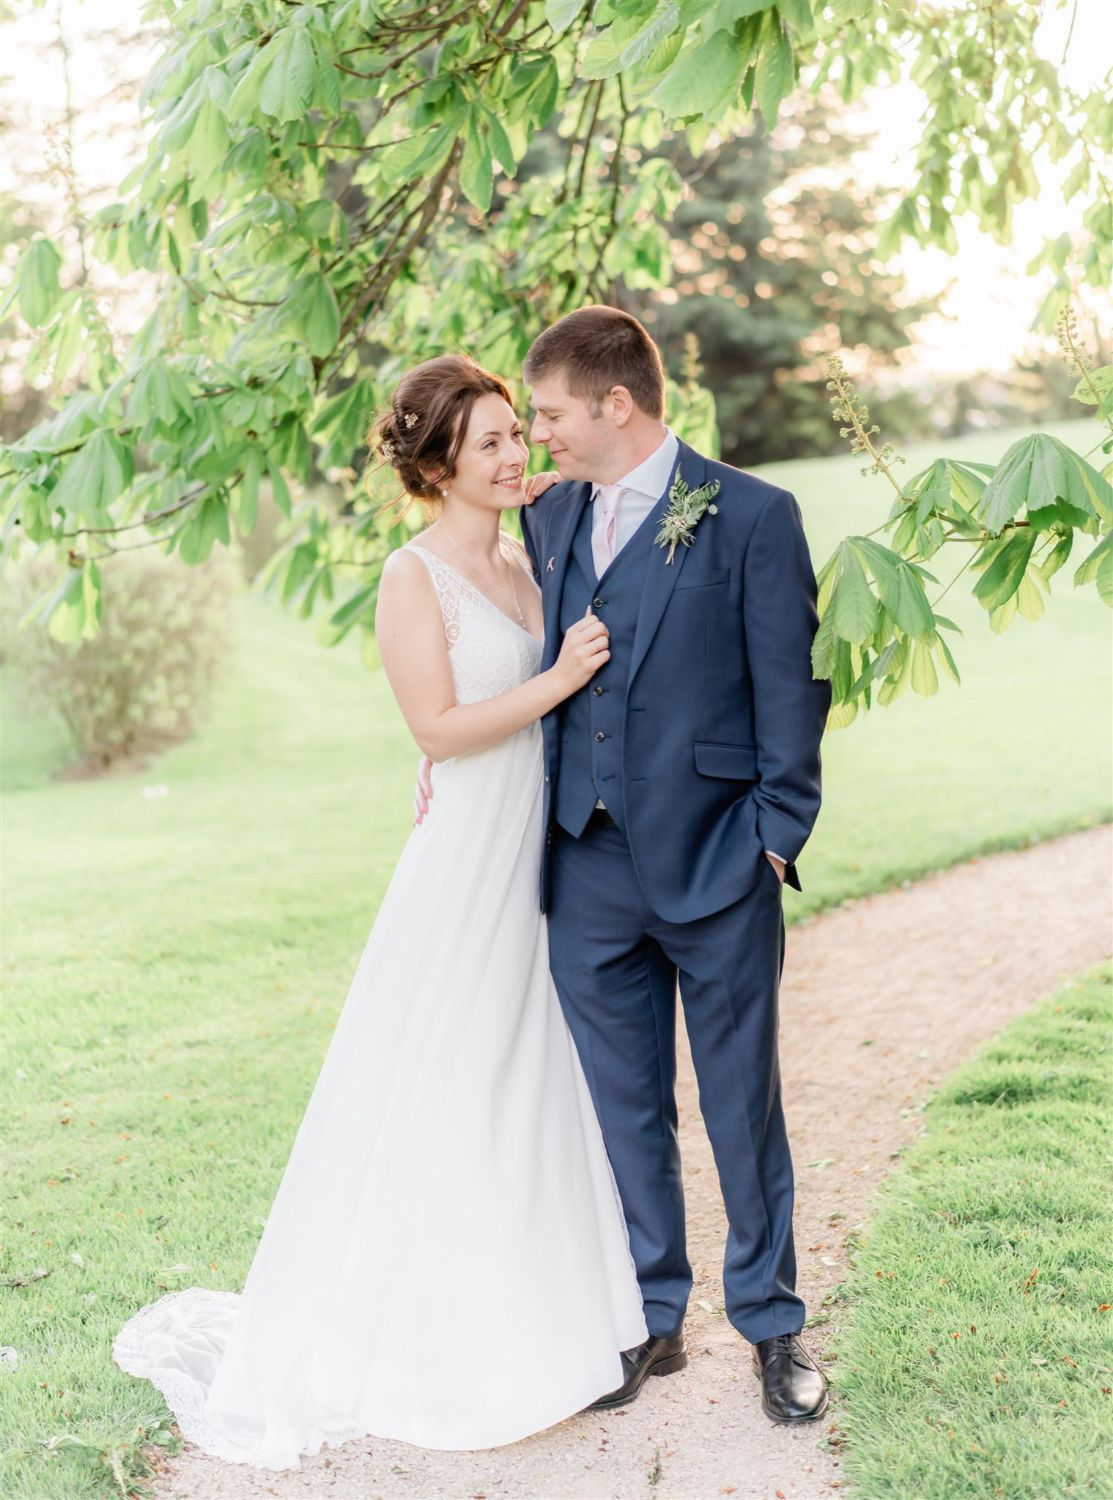 Real-Brides-Nottingham-Rembo-Styling-Graal-15